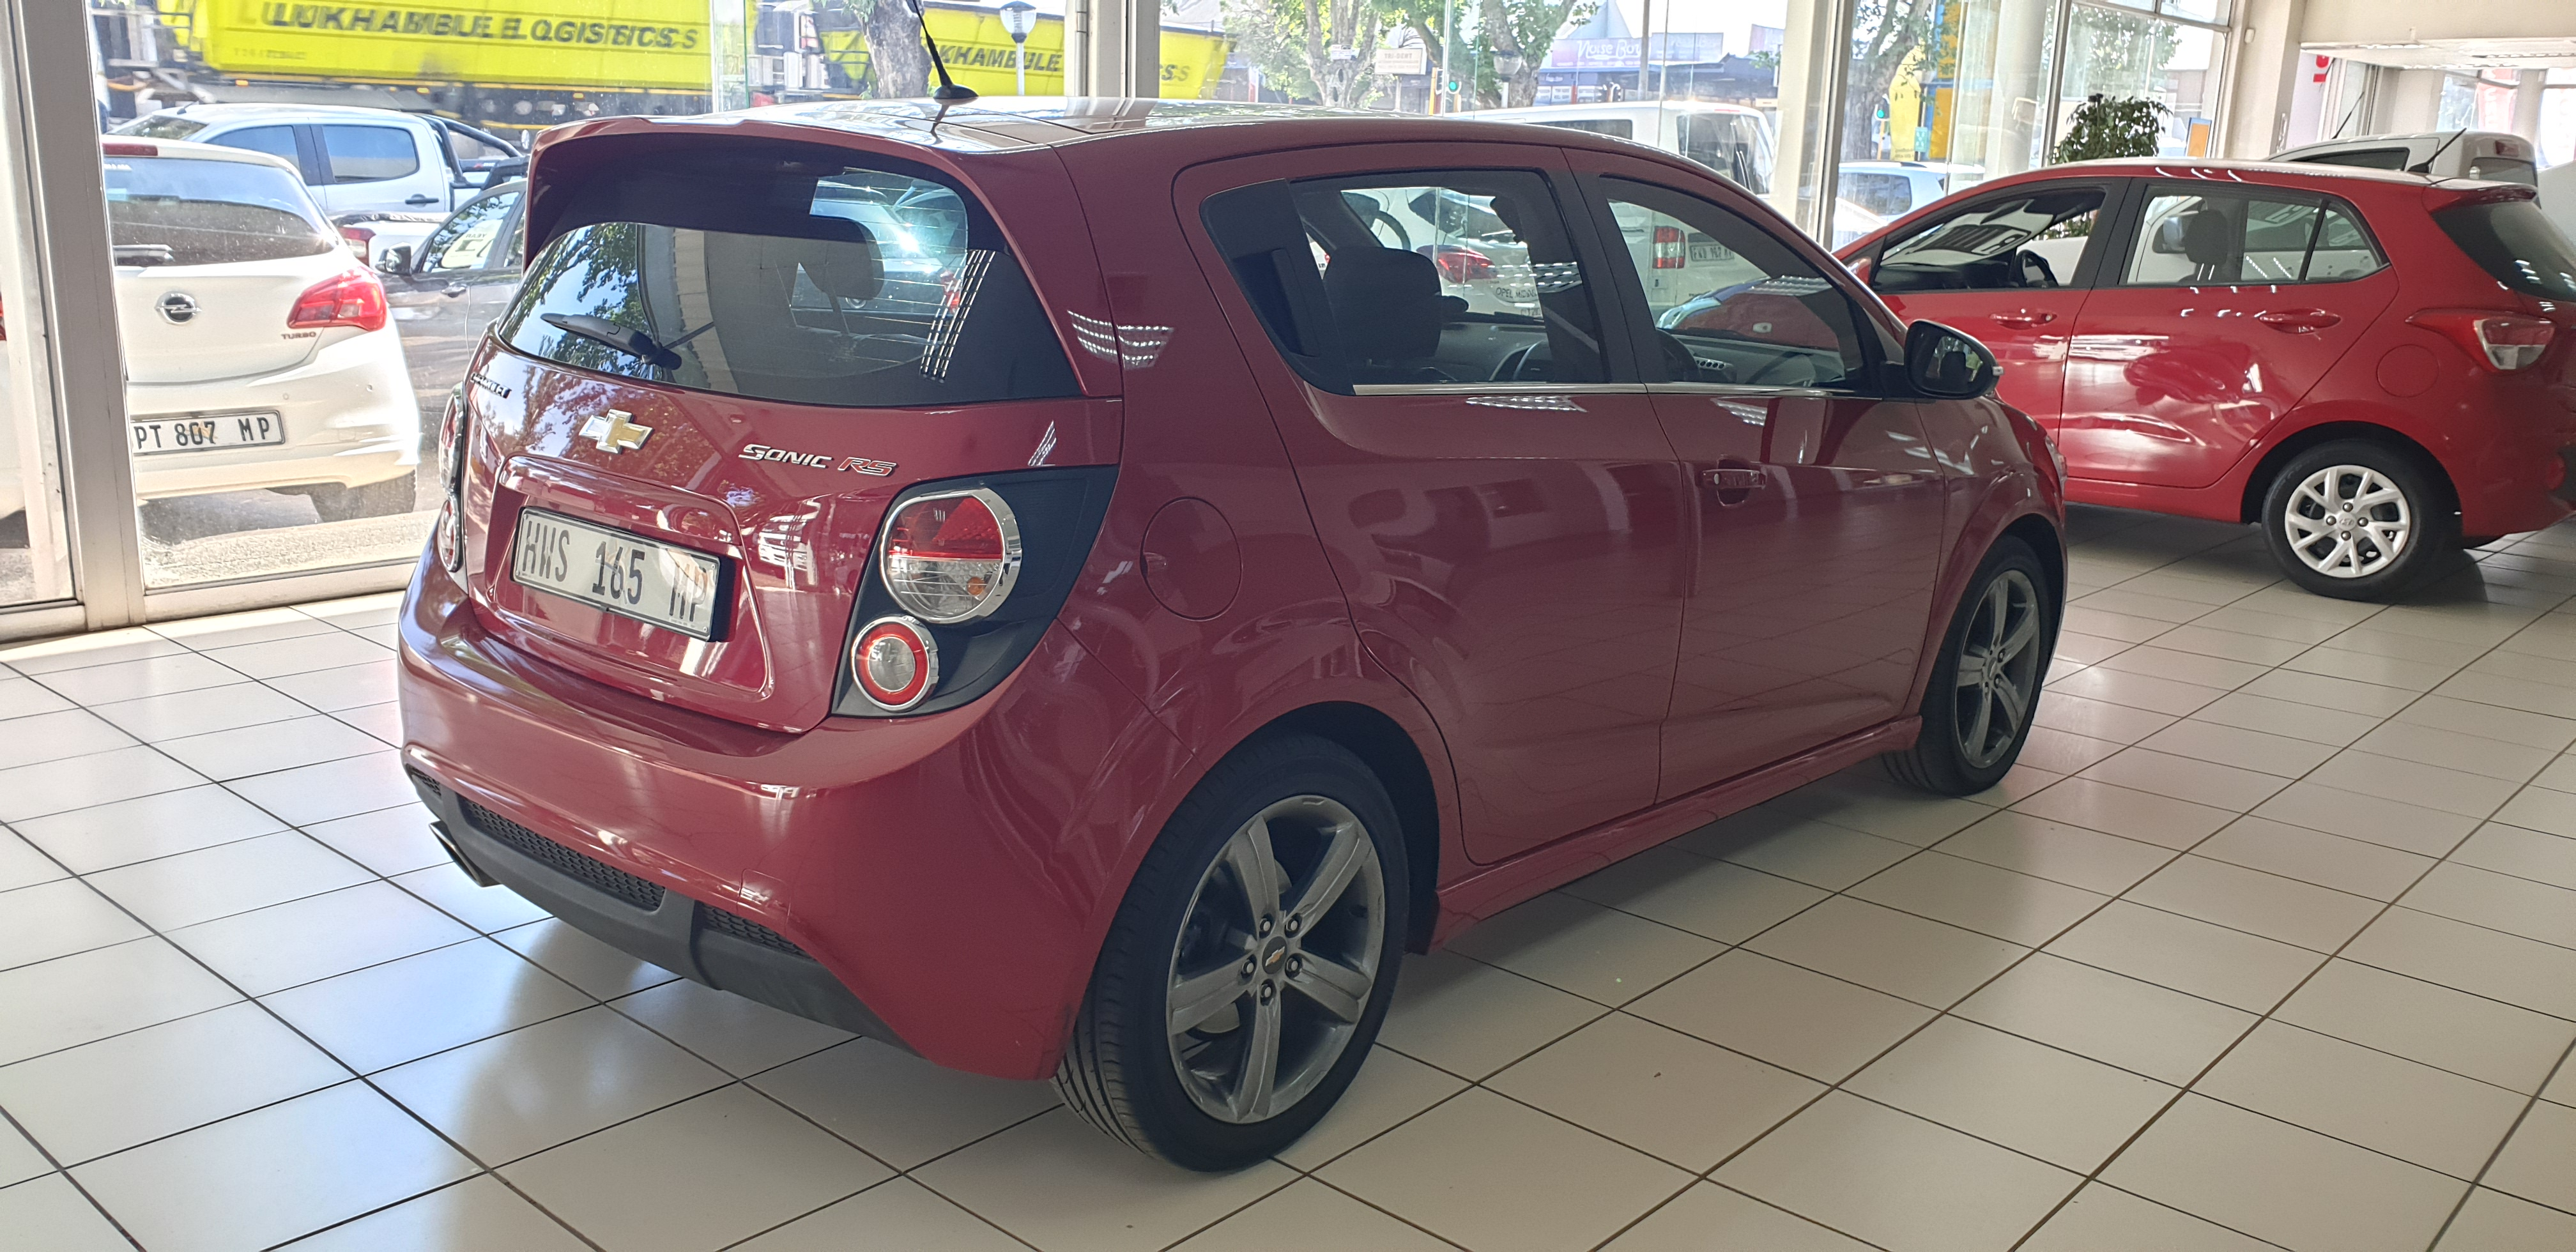 CHEVROLET	SONIC	1.4T RS 5DR